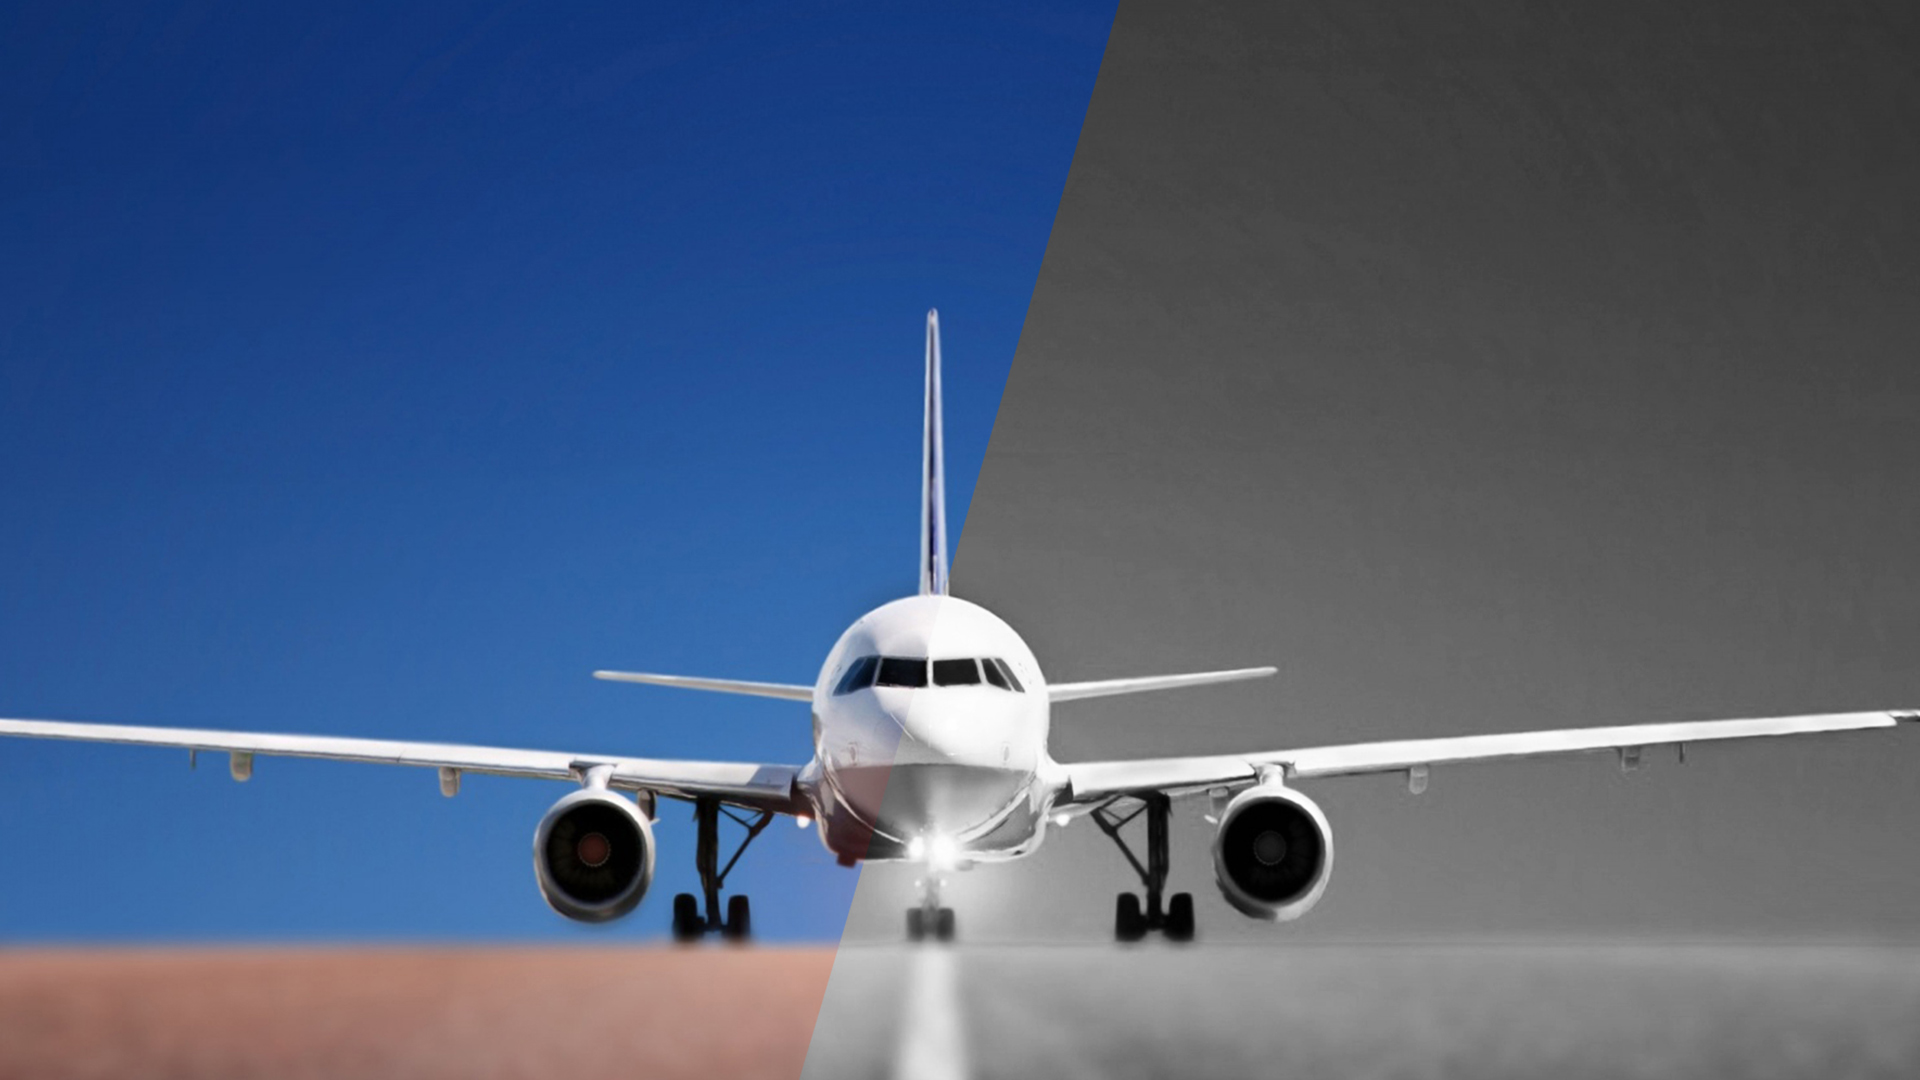 BoutIque ServIces For AIrlInes